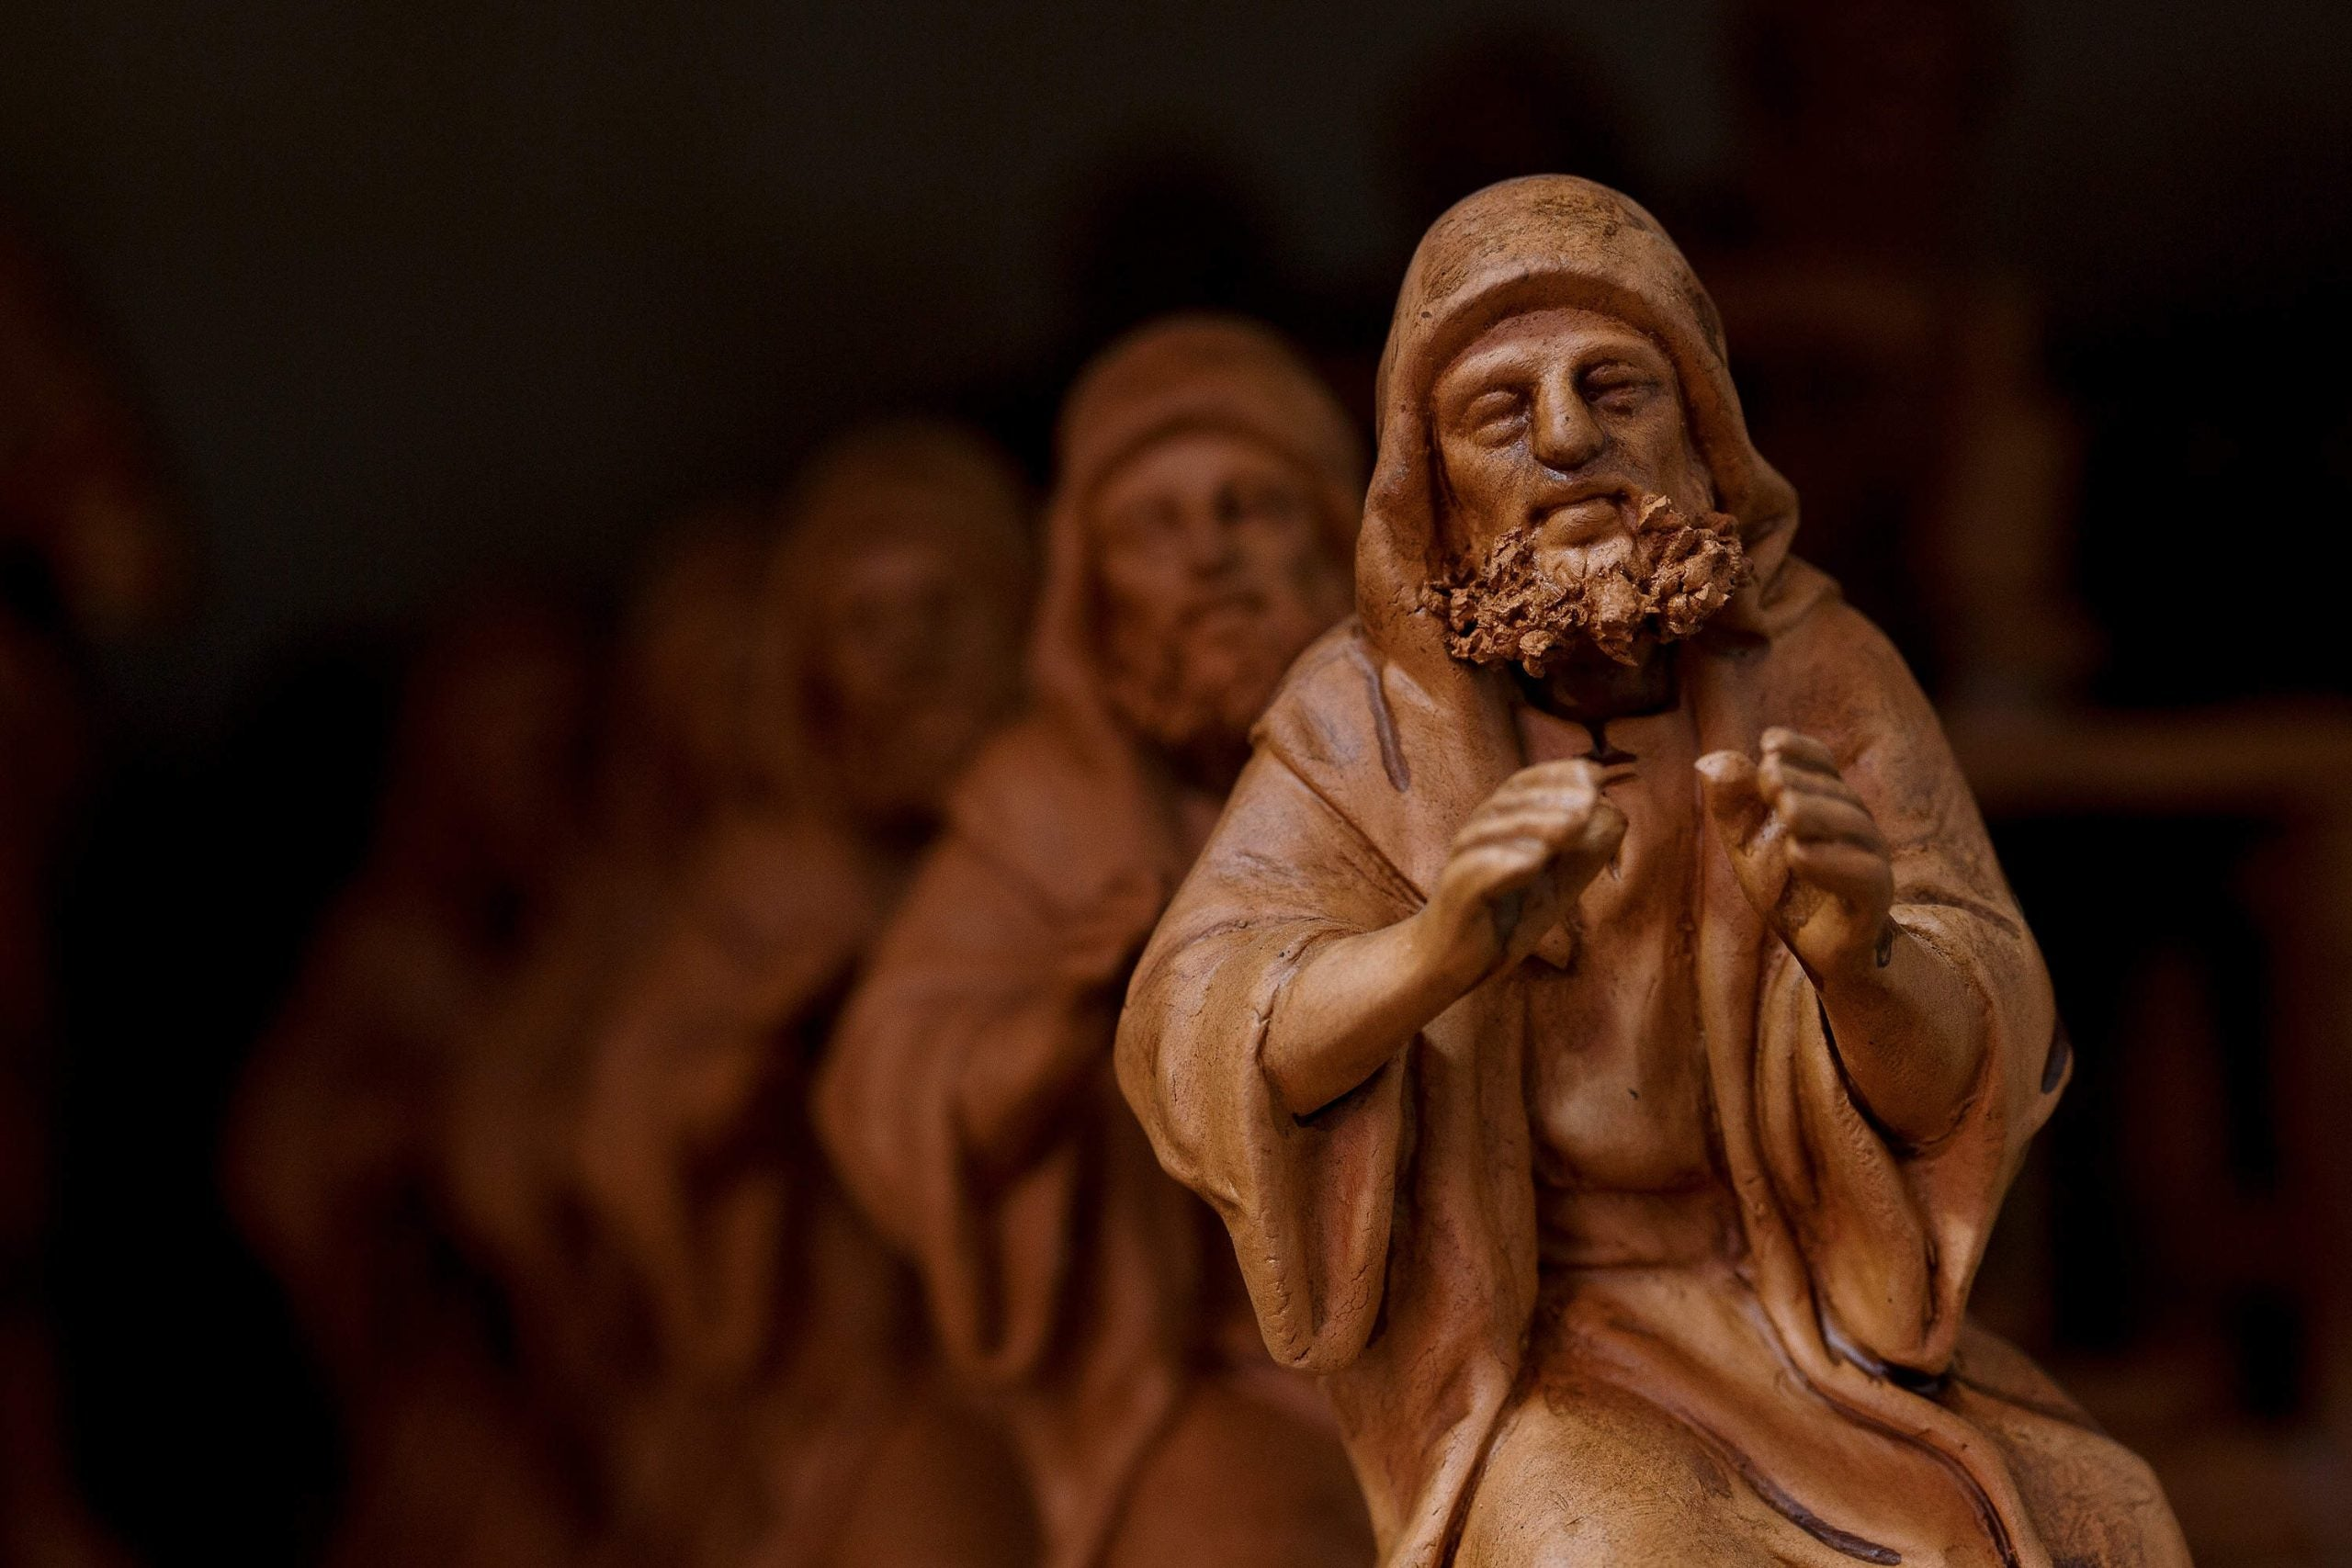 This Christmas, we should cherish the weirdness of religion